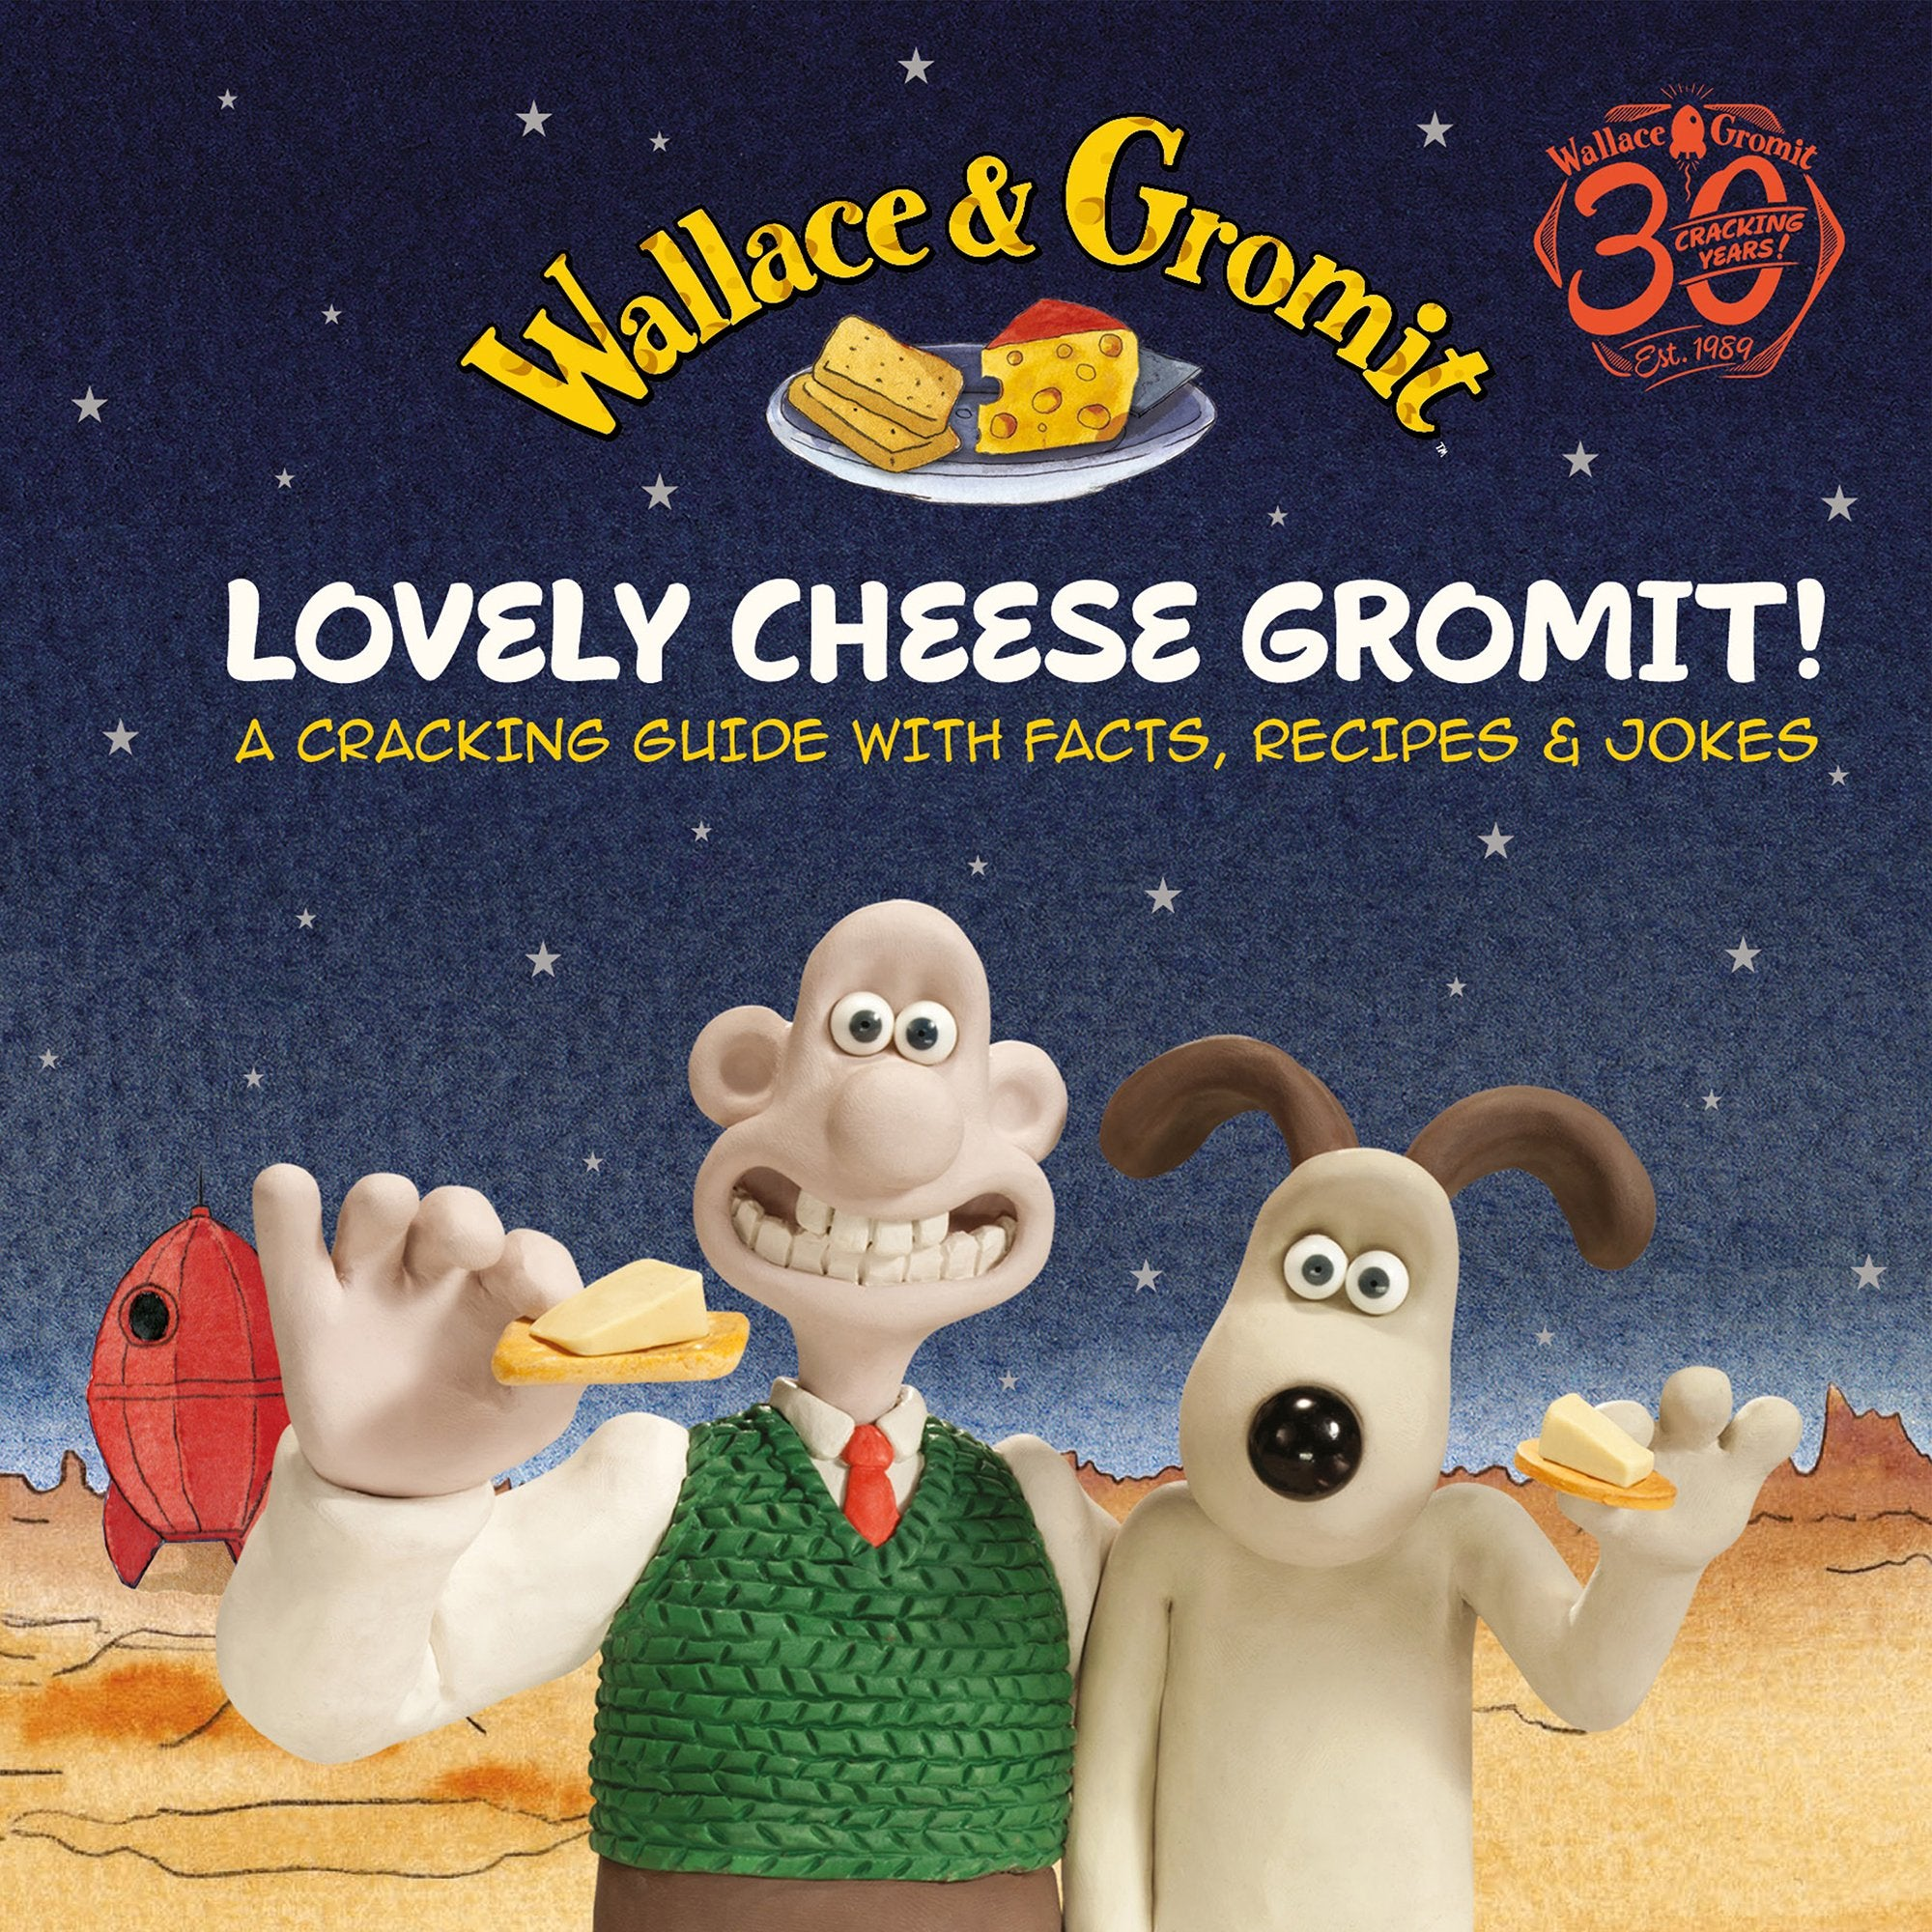 Wallace & Gromit Giftbook - Lovely Cheese Gromit - Half Moon Bay US